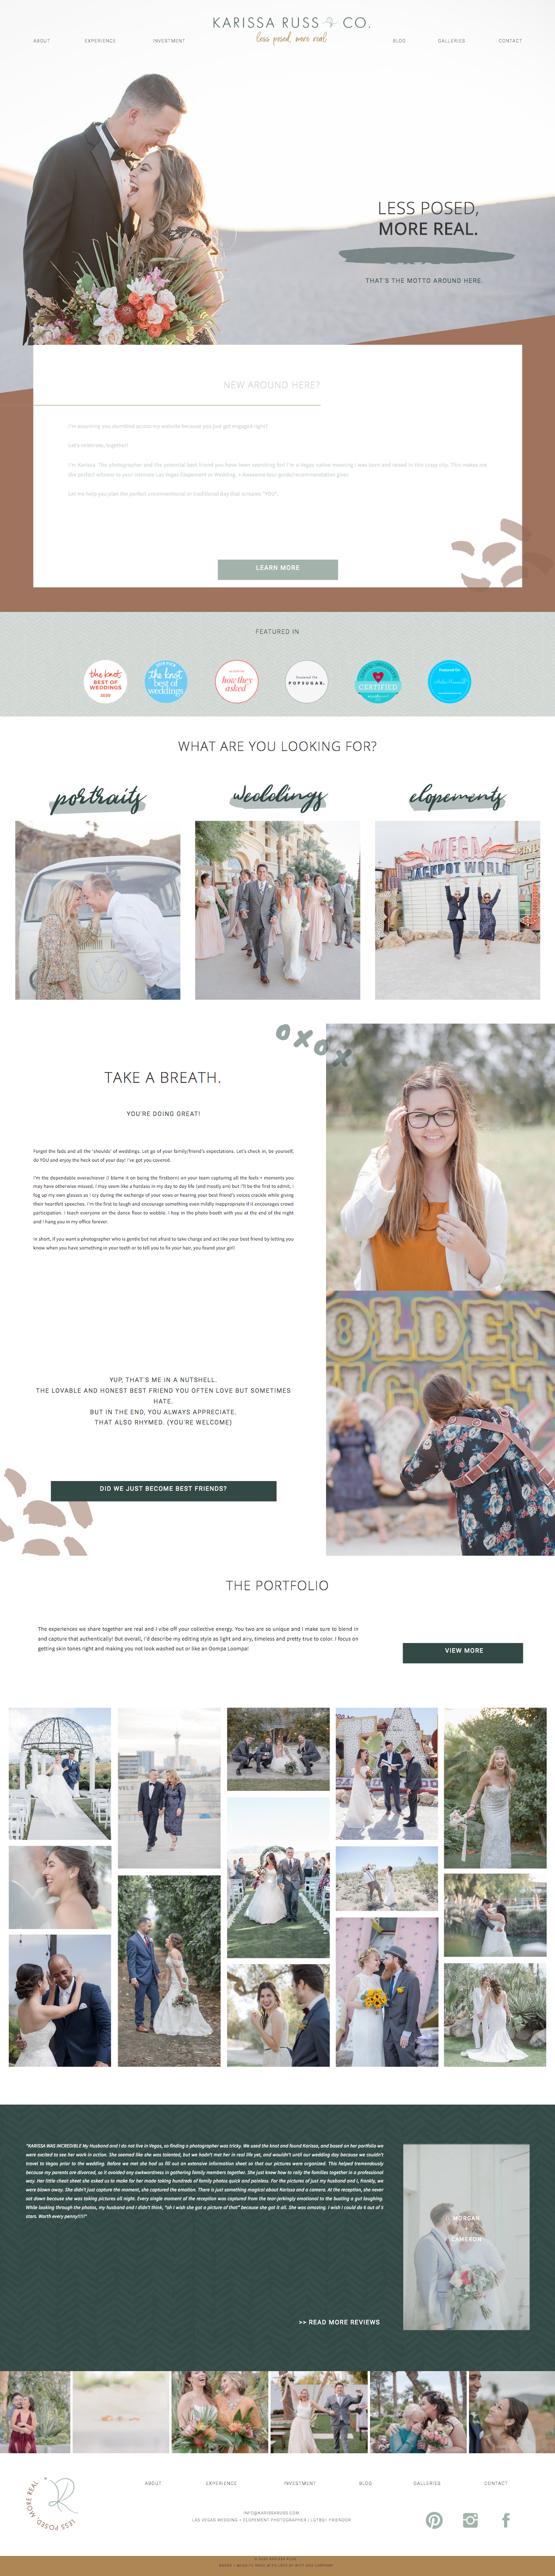 Karissa Russ & Co. Home Page Website Design with Showit